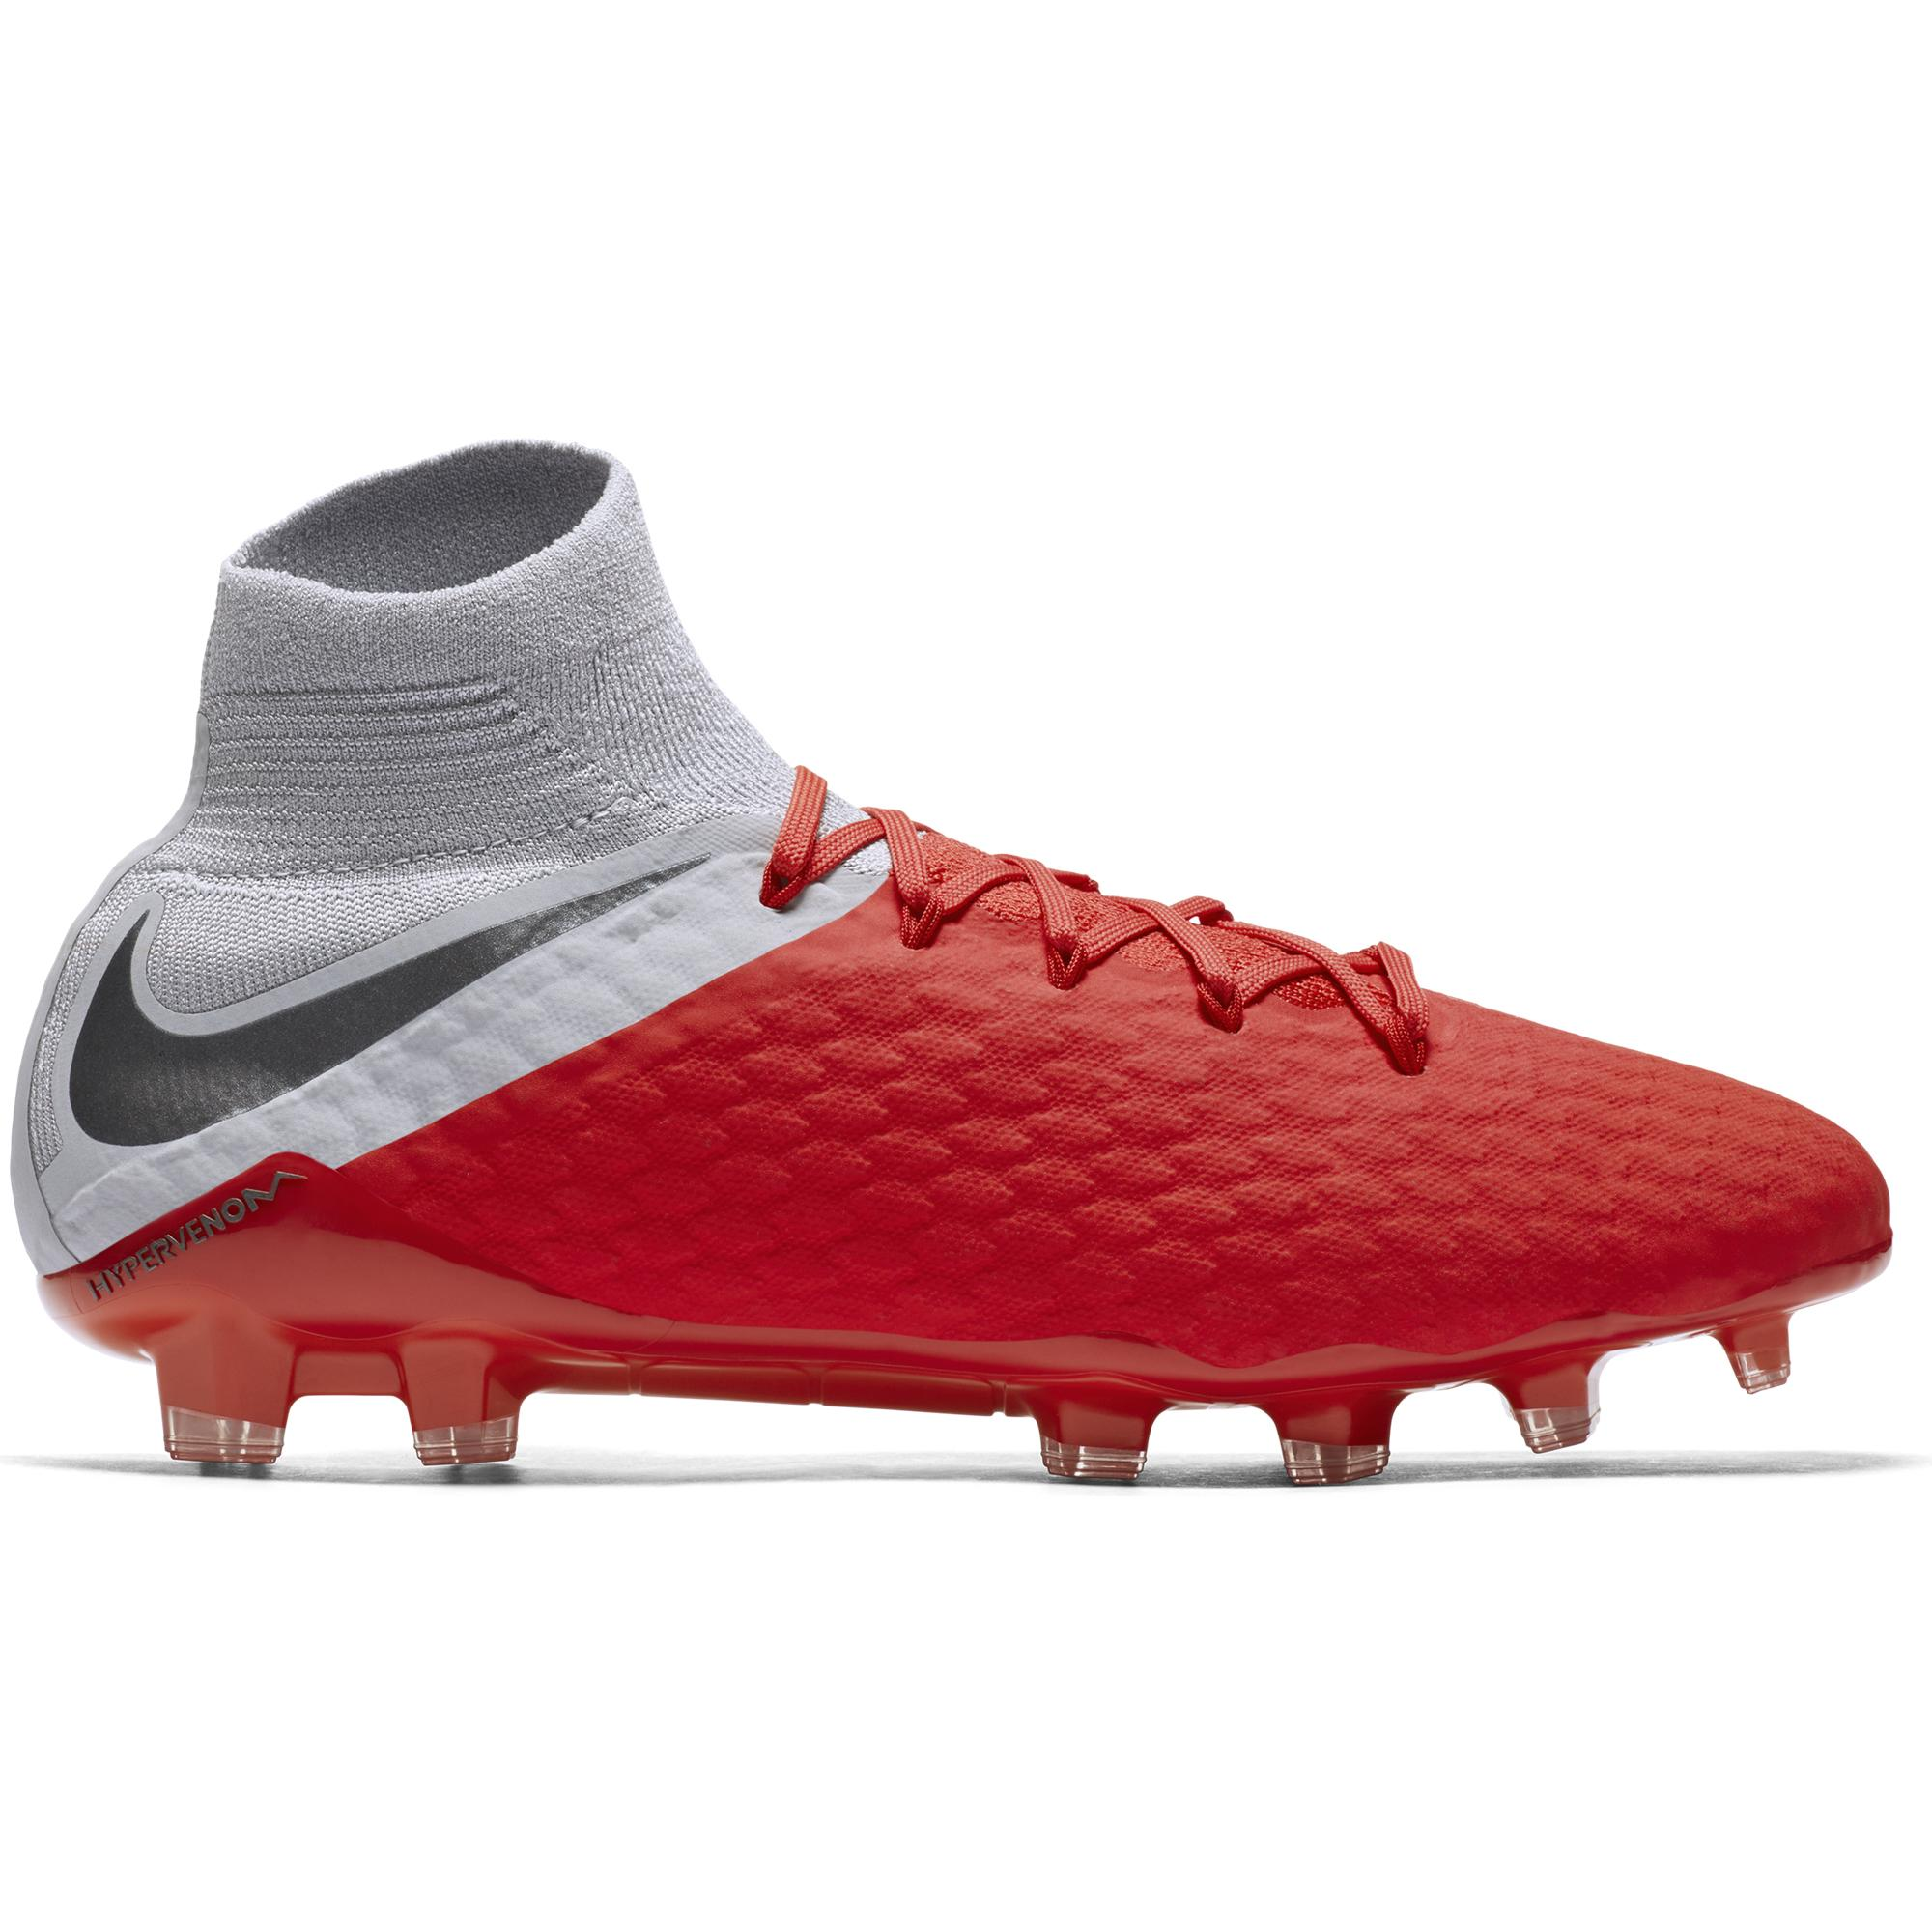 Nike Football Shoes Hypervenom Iii Pro Dynamic Fit